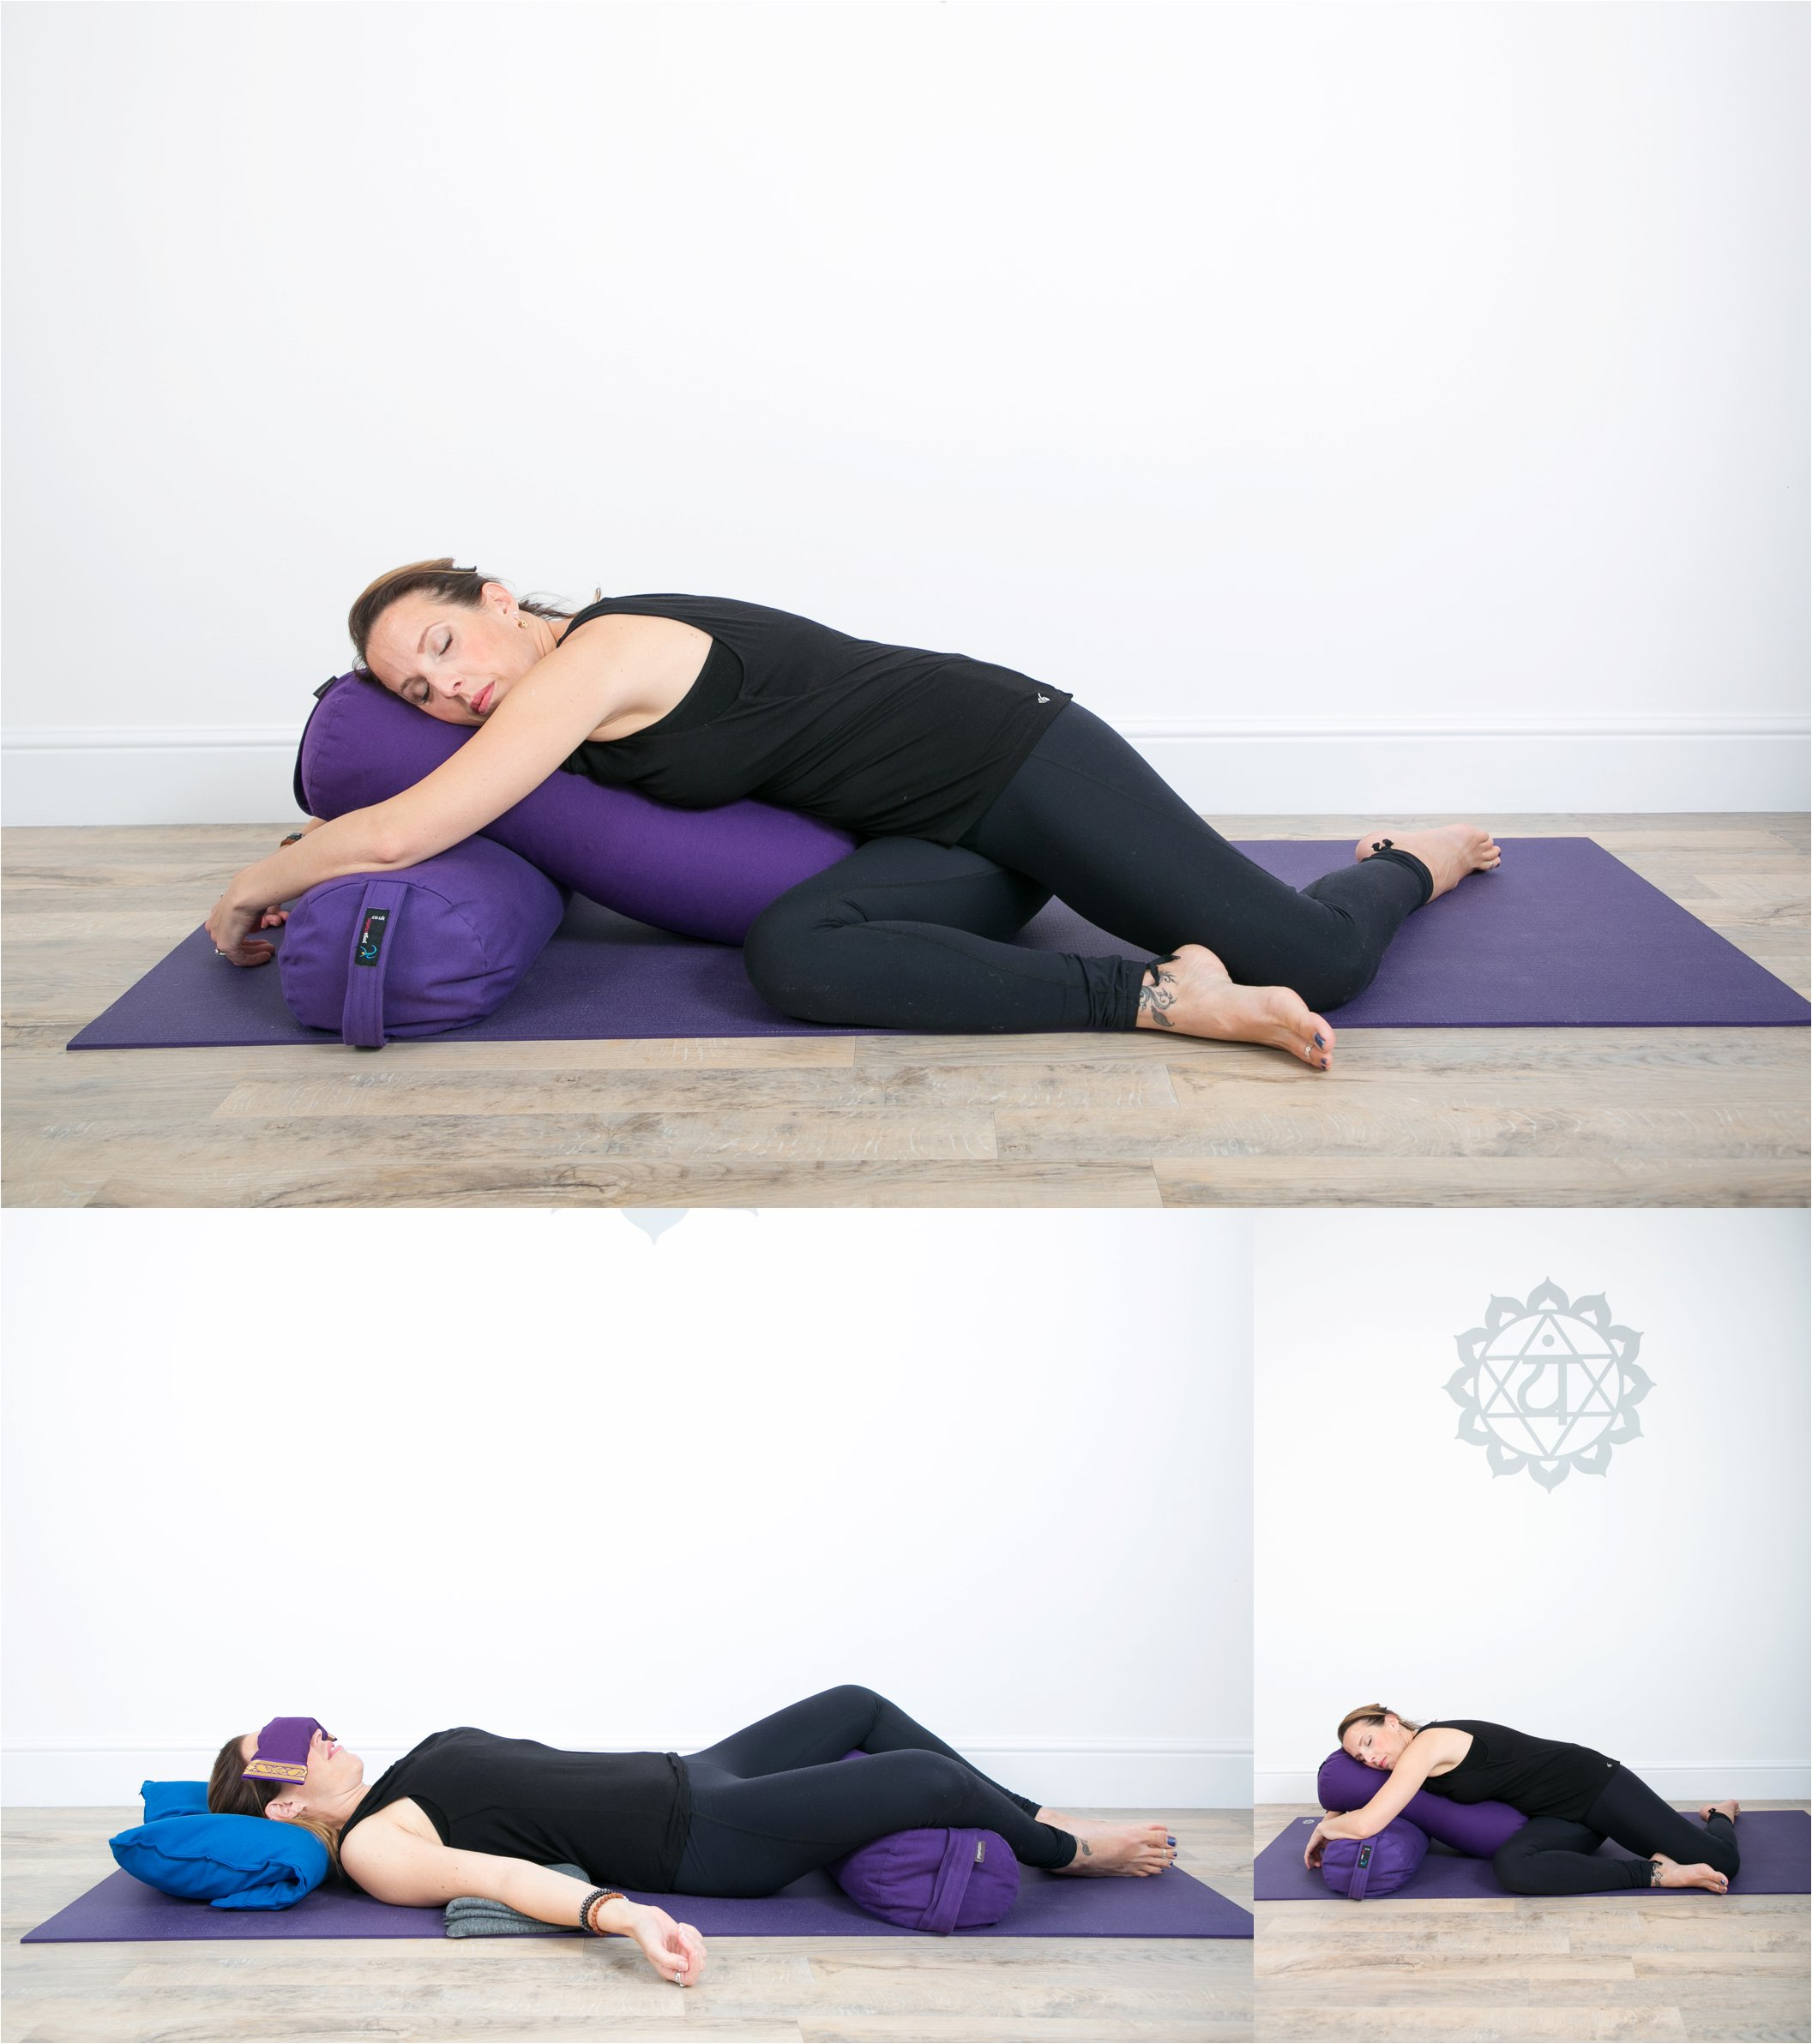 yin yoga poses, essex yoga photography